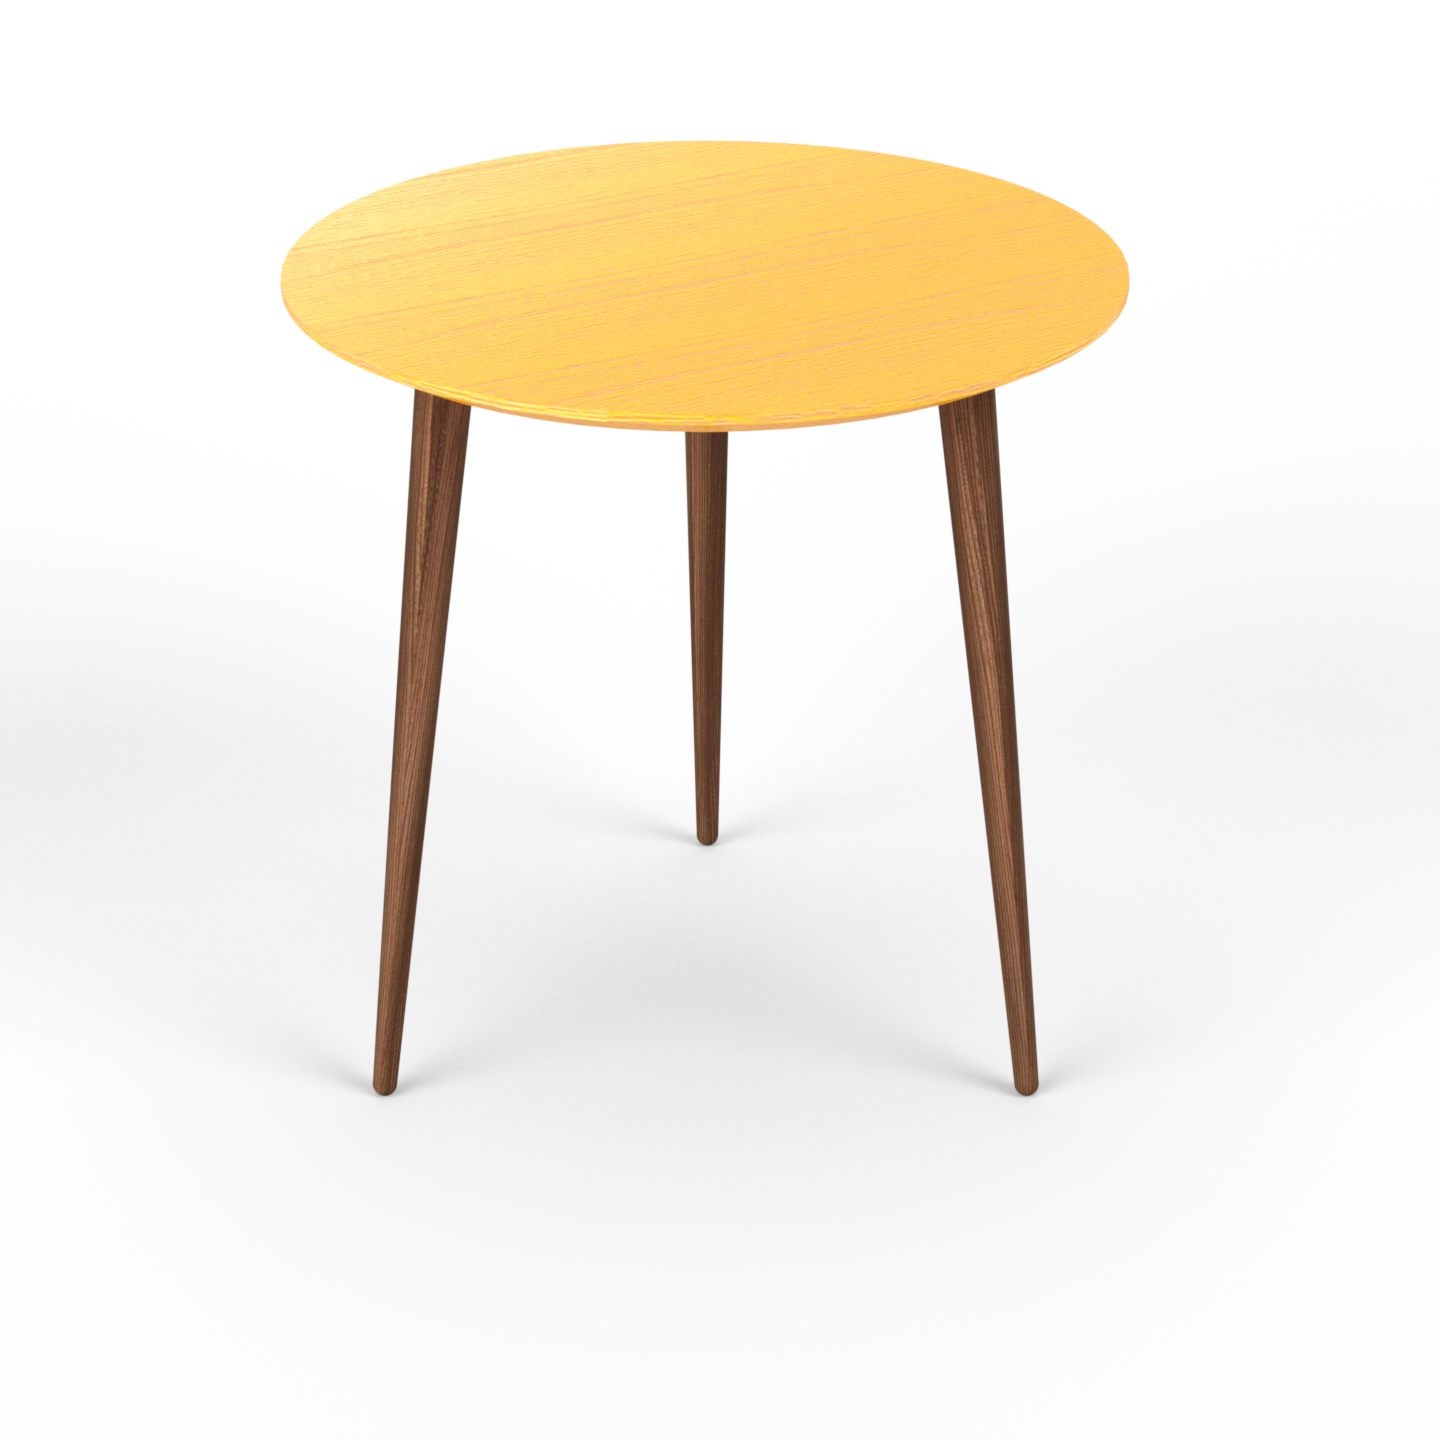 Table basse - jaune ronde design scandinave petite table pour salon ...